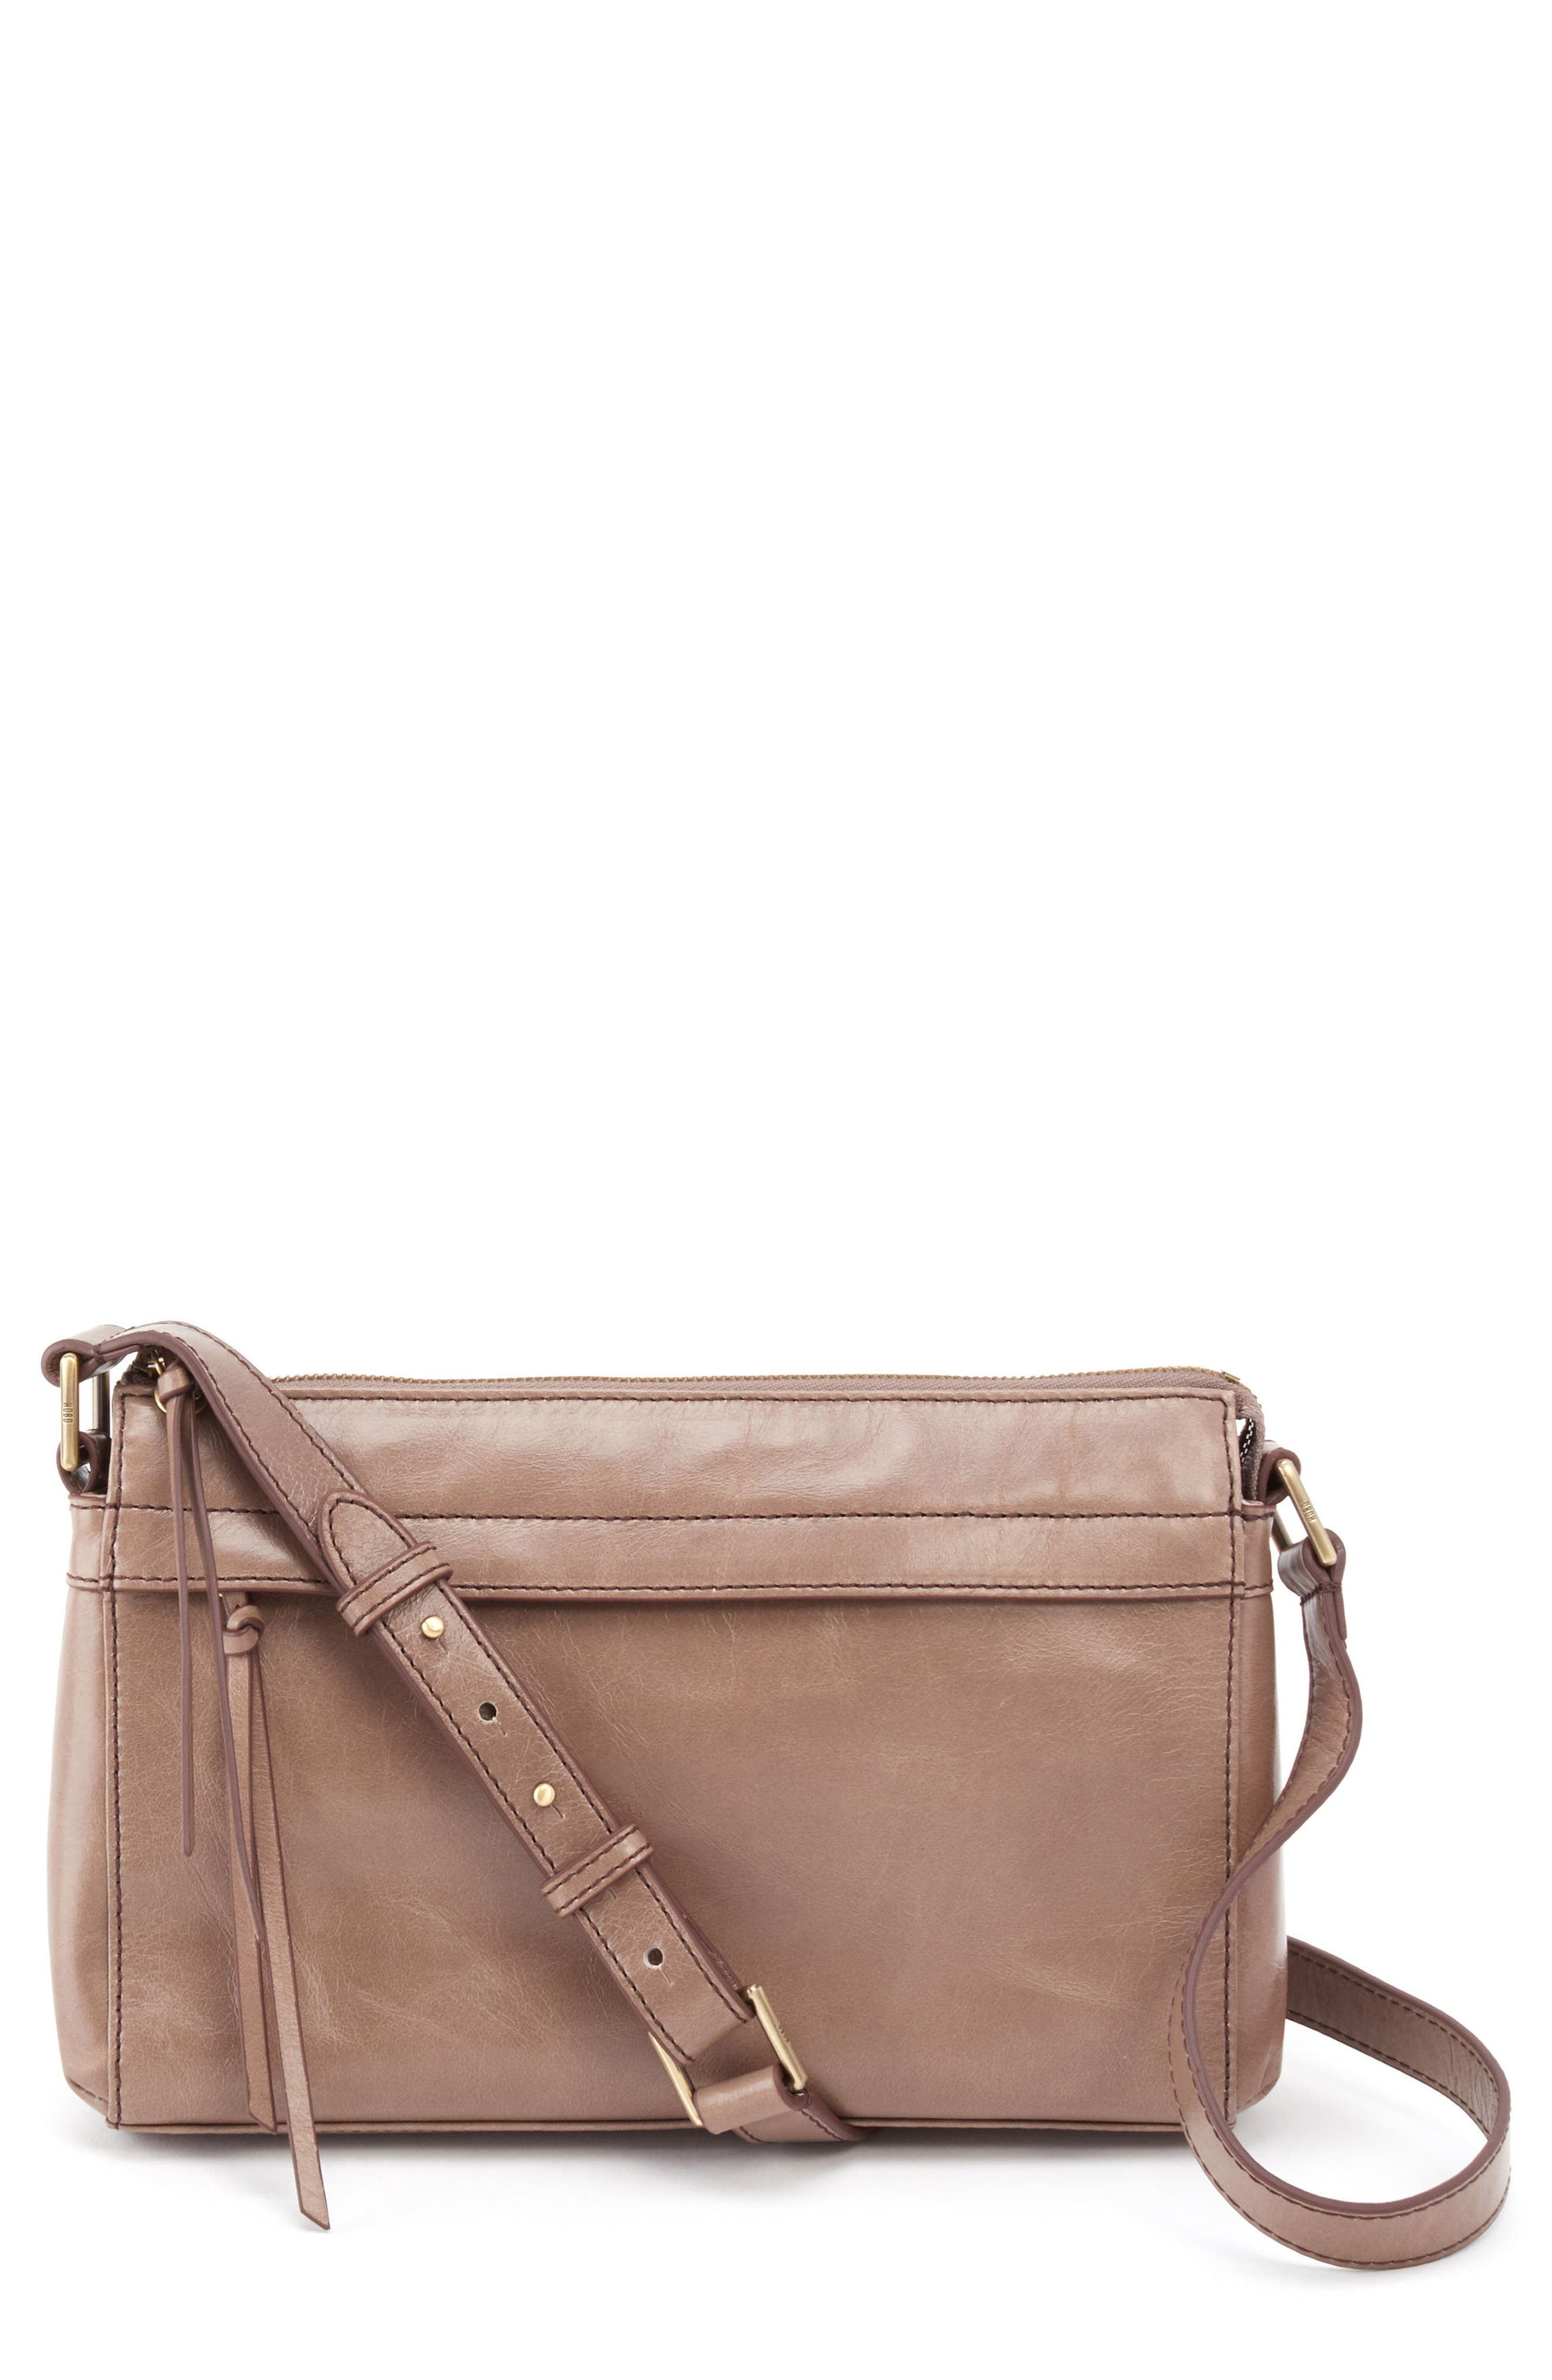 Tobey Leather Crossbody Bag,                             Main thumbnail 1, color,                             037